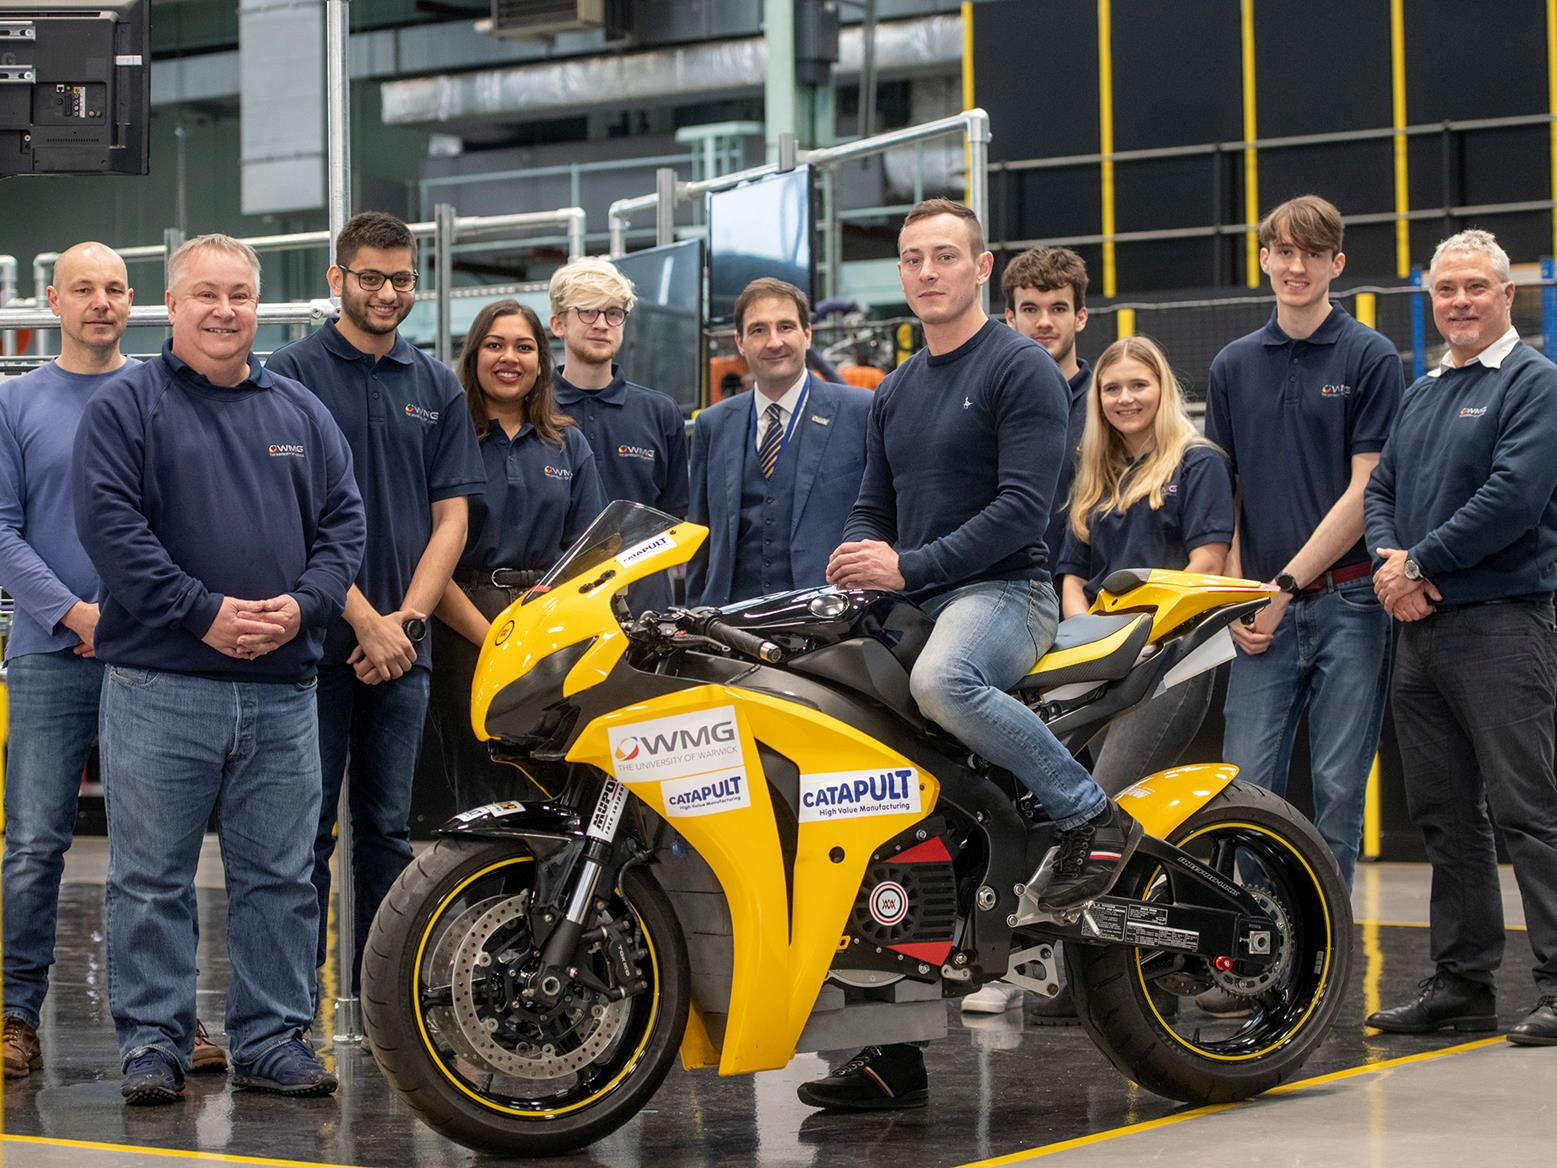 University of Warwick develop electric superbike based on a Fireblade